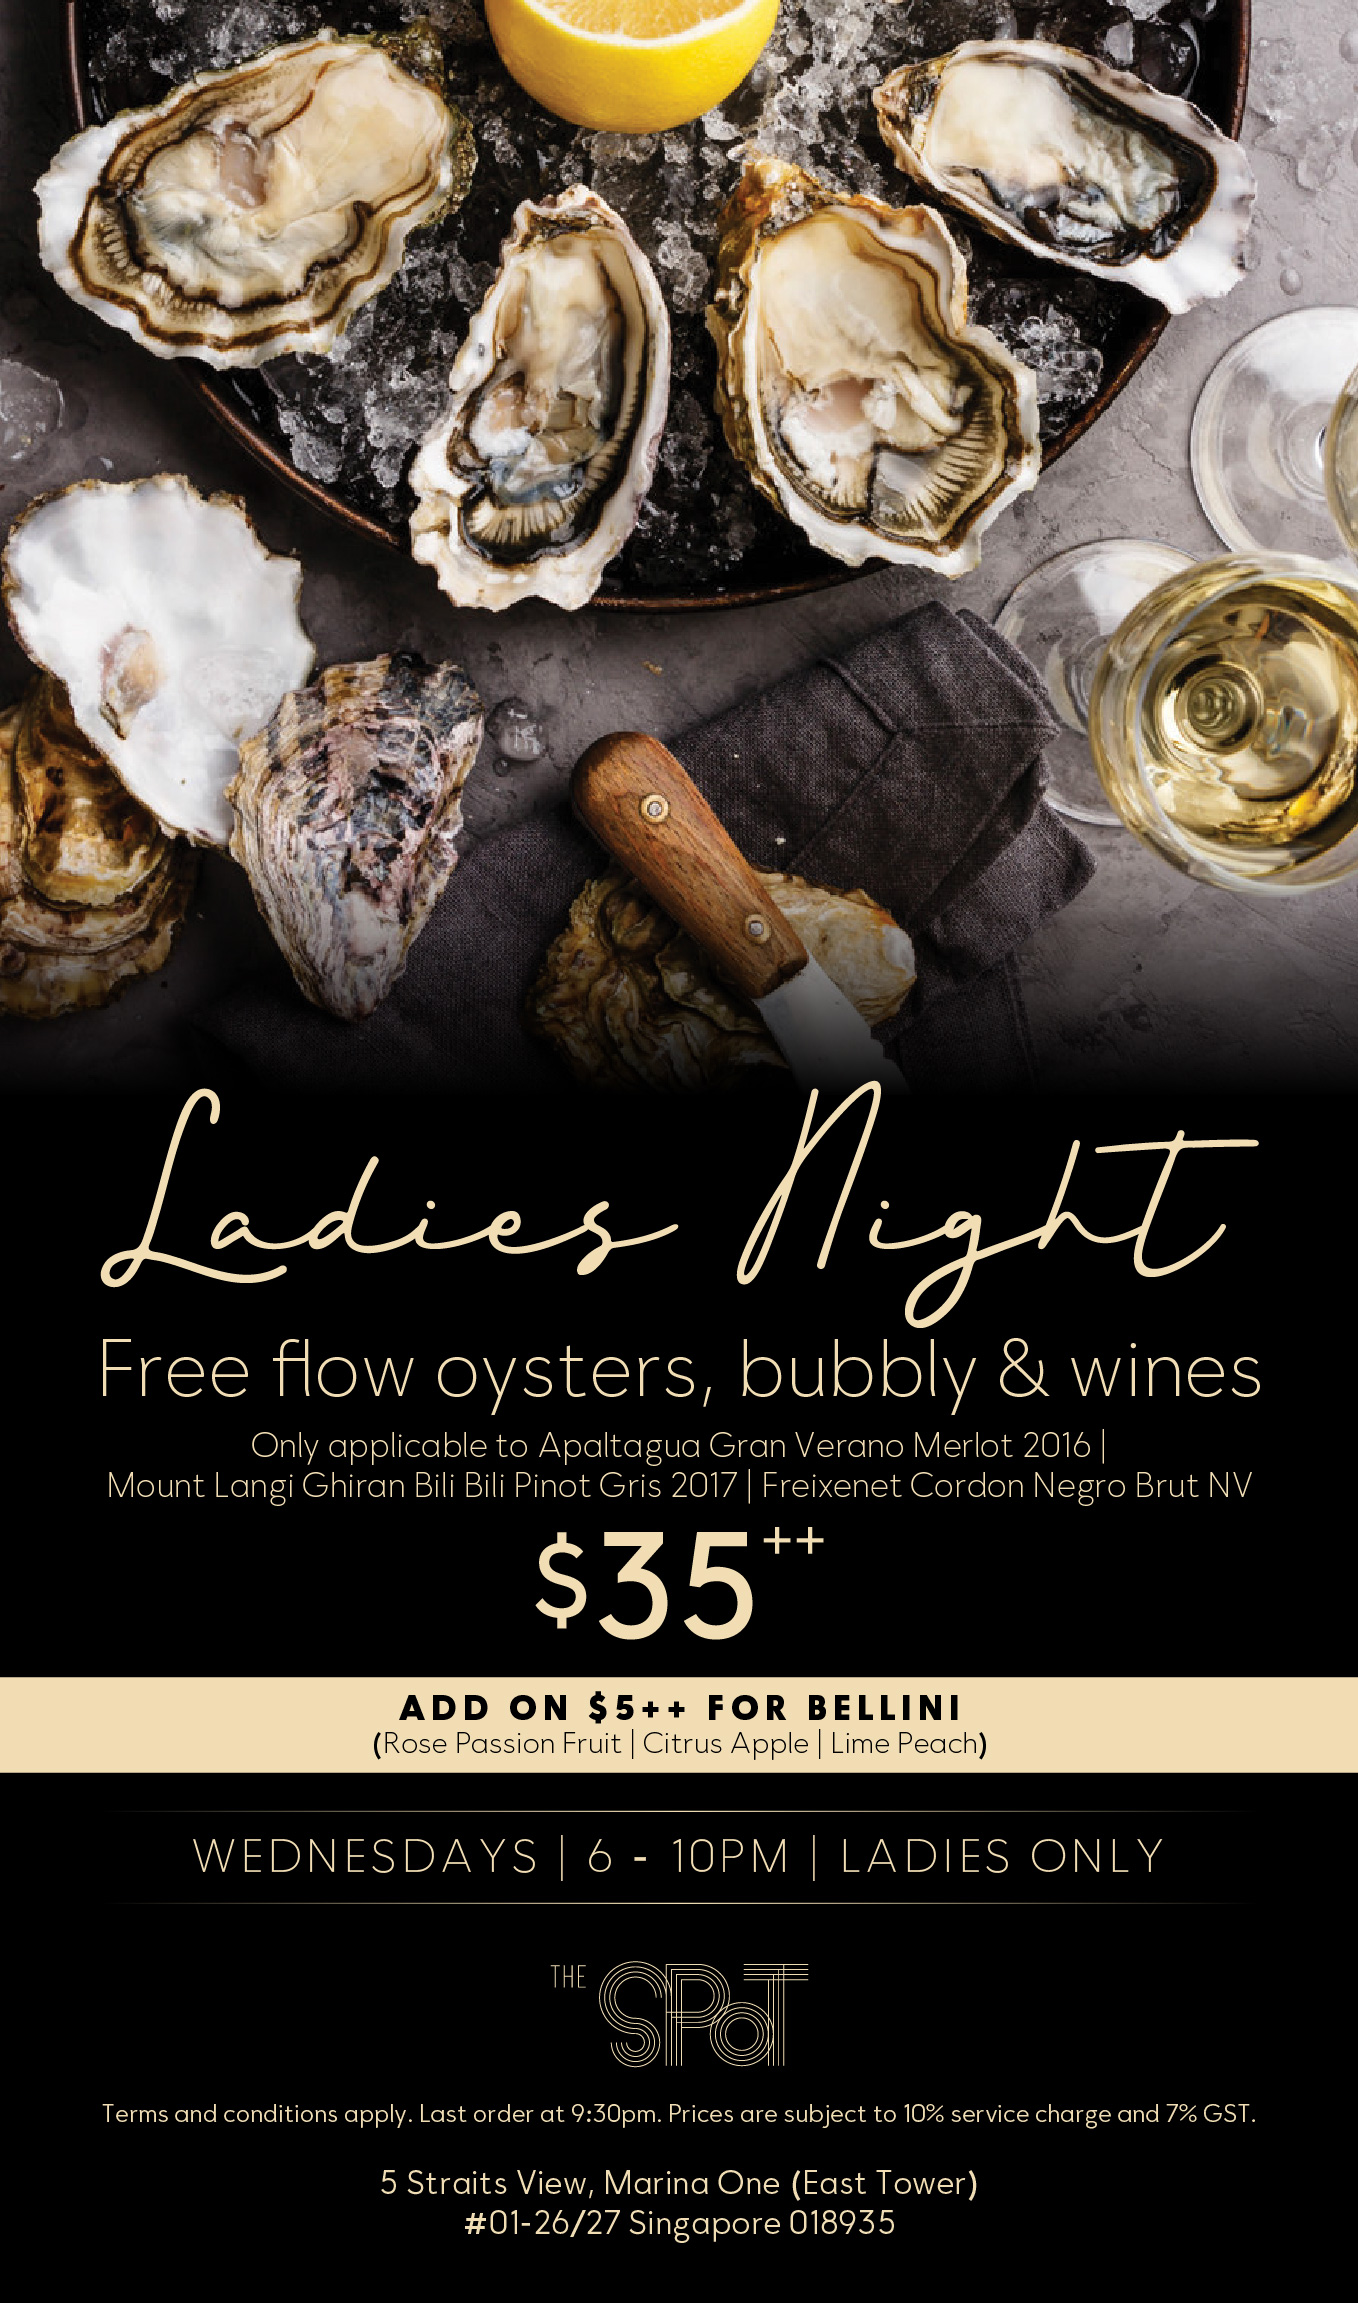 Ladies Night at The Spot Singapore, Marina One, with Free Flow Oysters and Drinks on Wednesday Nights